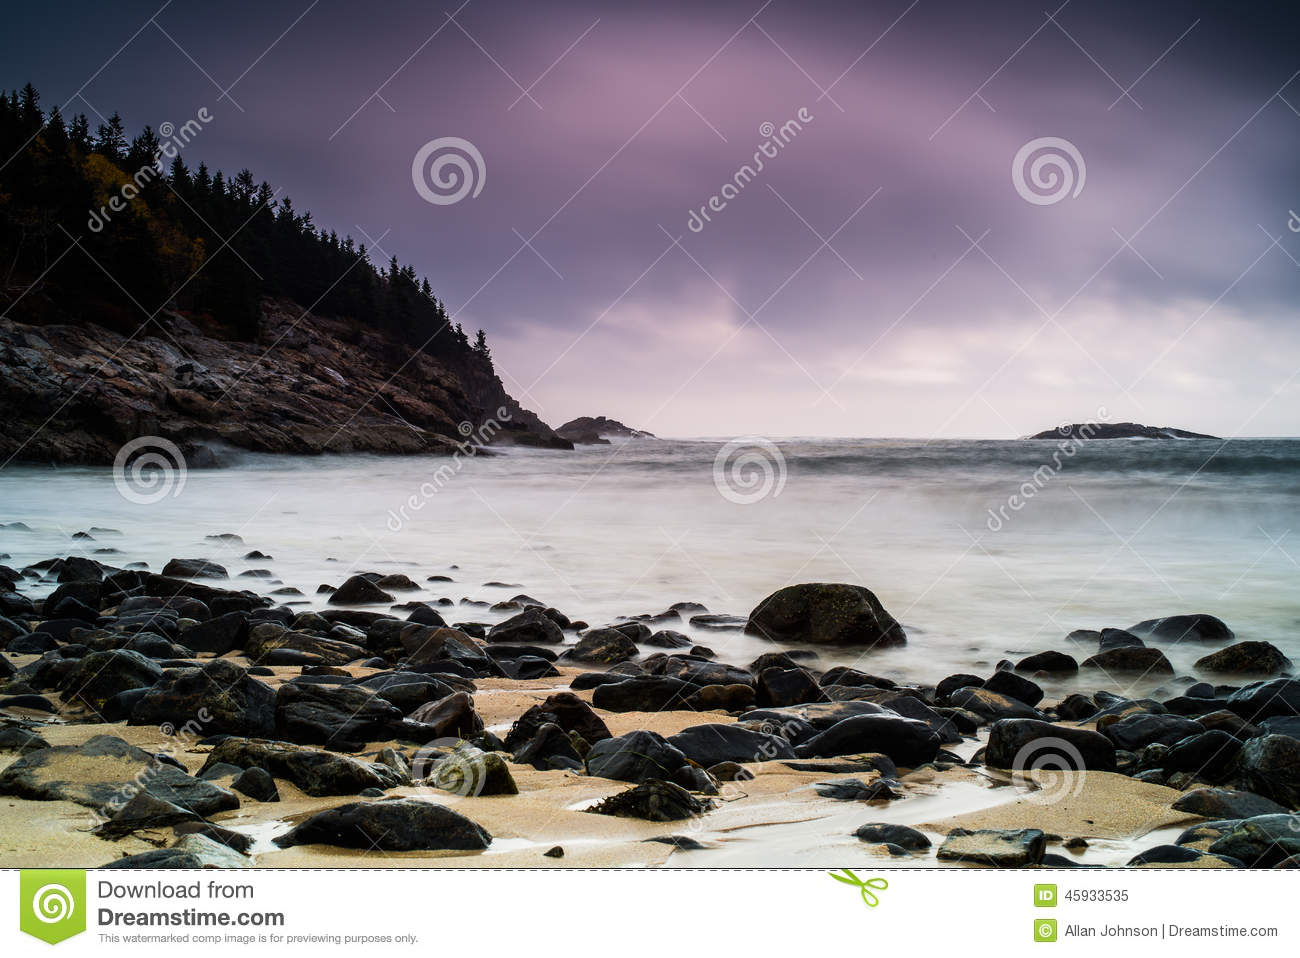 Plage rocheuse